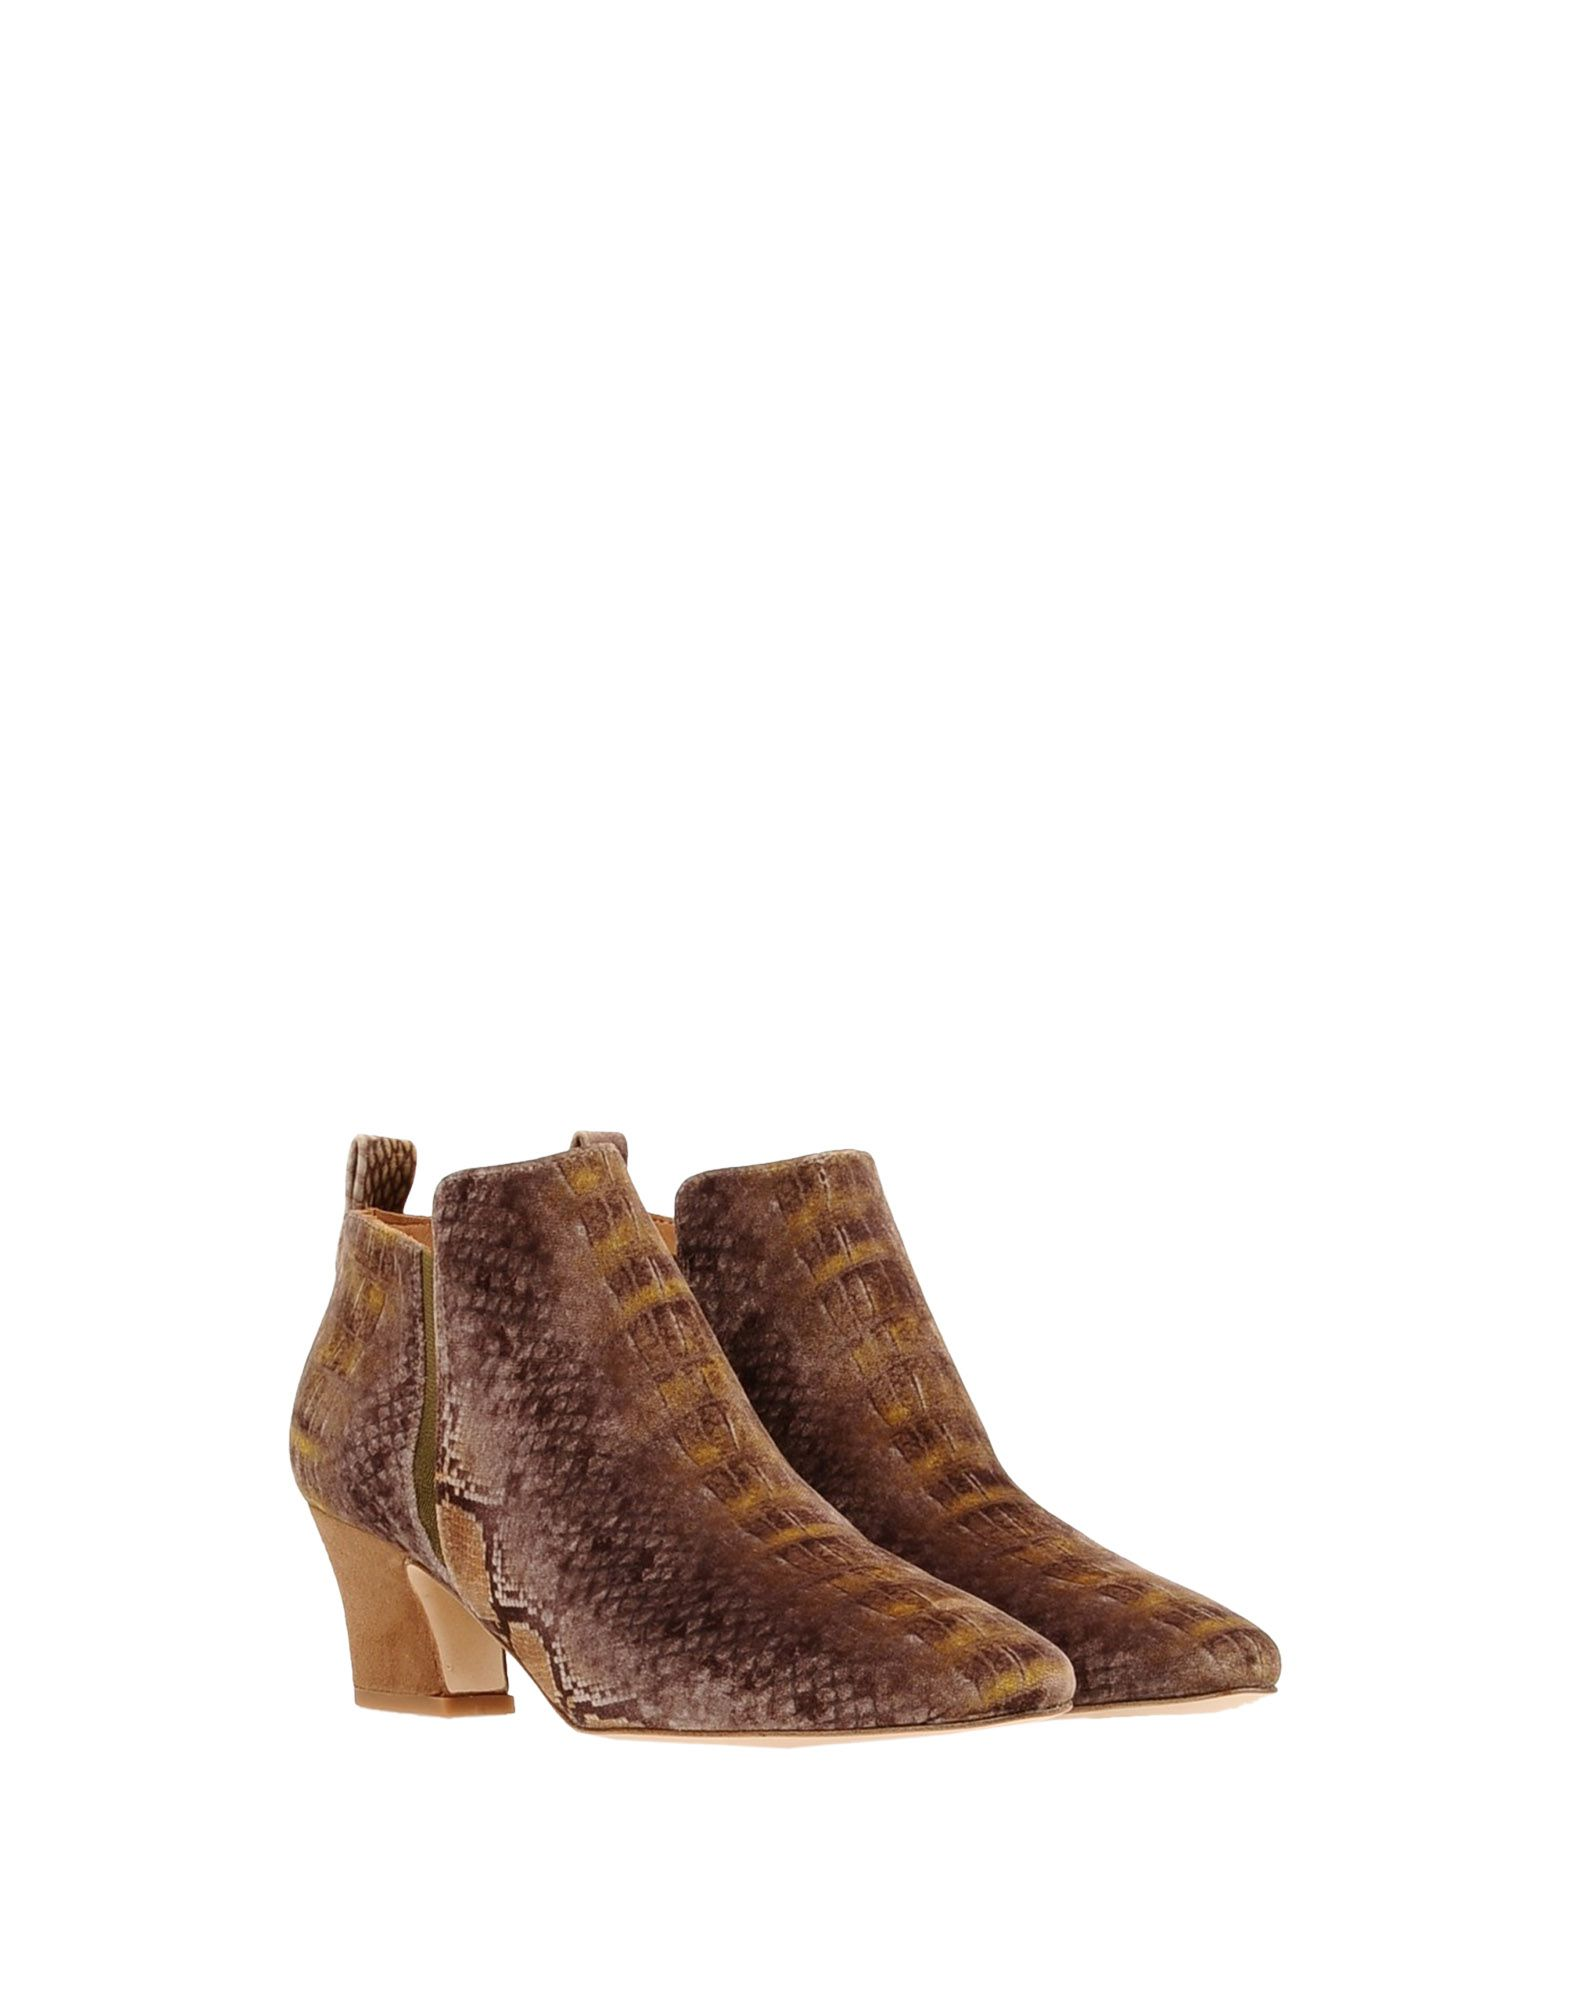 Bottine Miista Femme - Bottines Miista sur